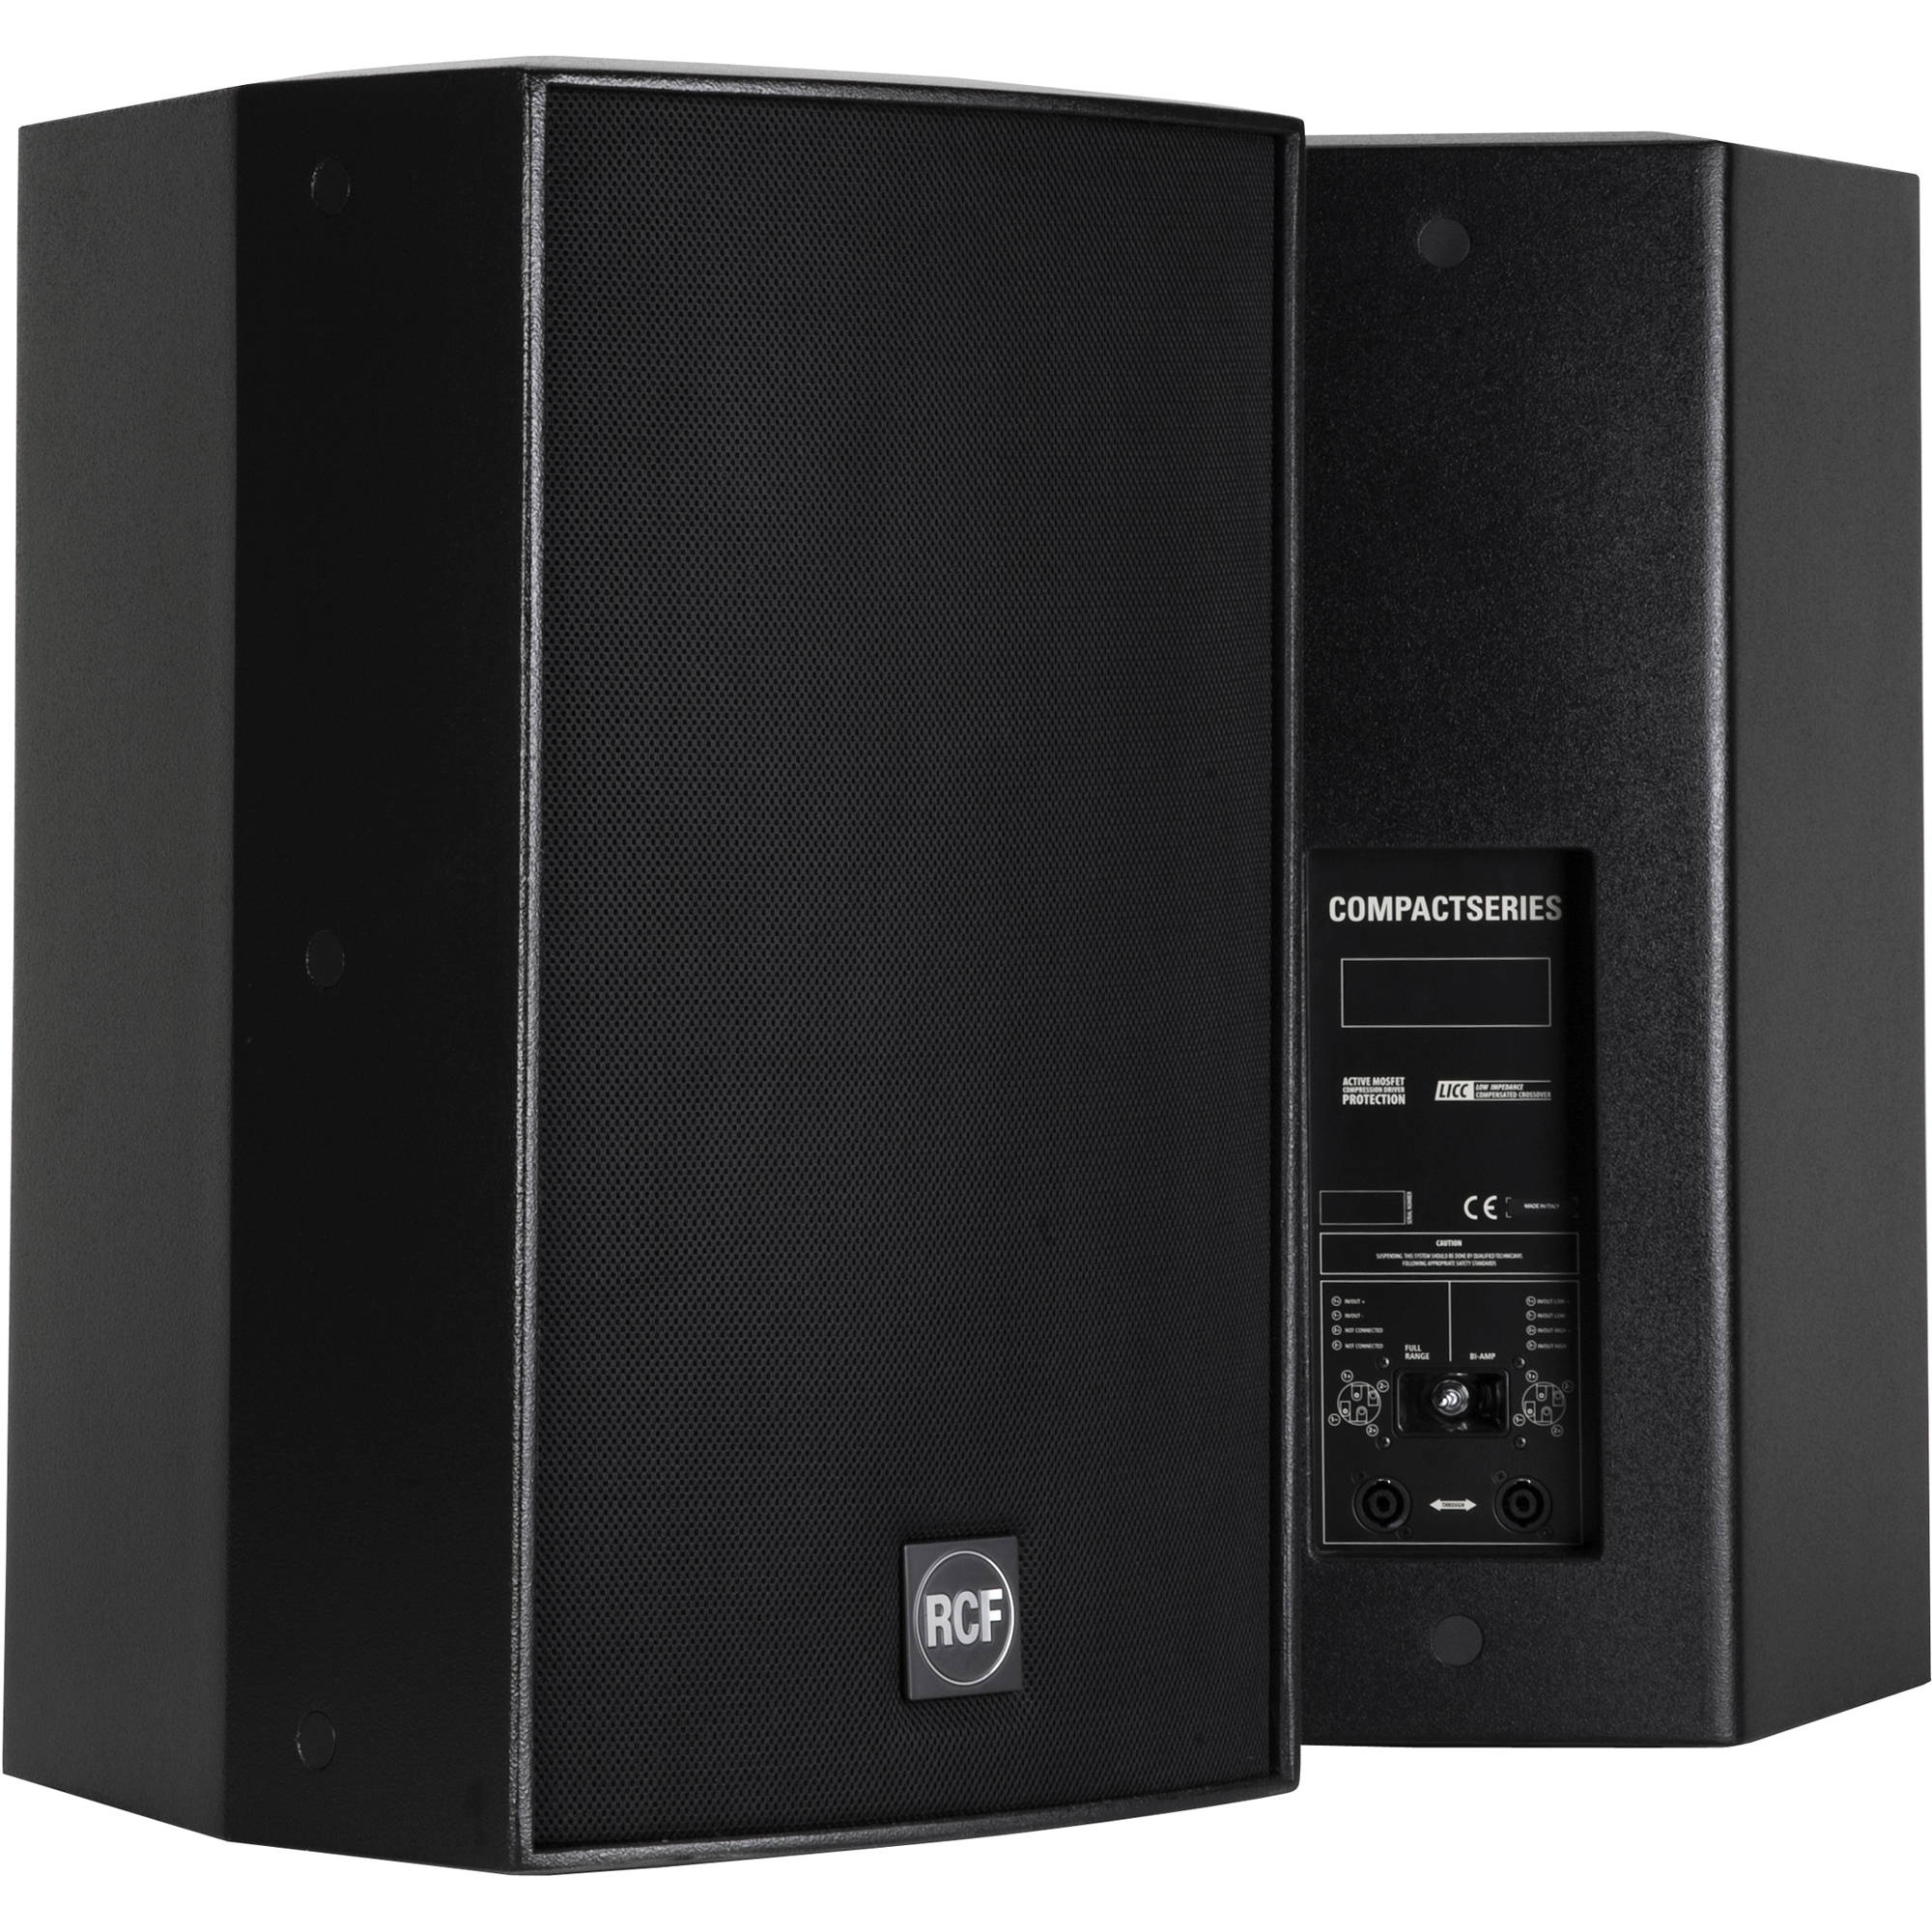 RCF C5212-96 Acustica Series 500W Two-Way Passive Speaker (Black)